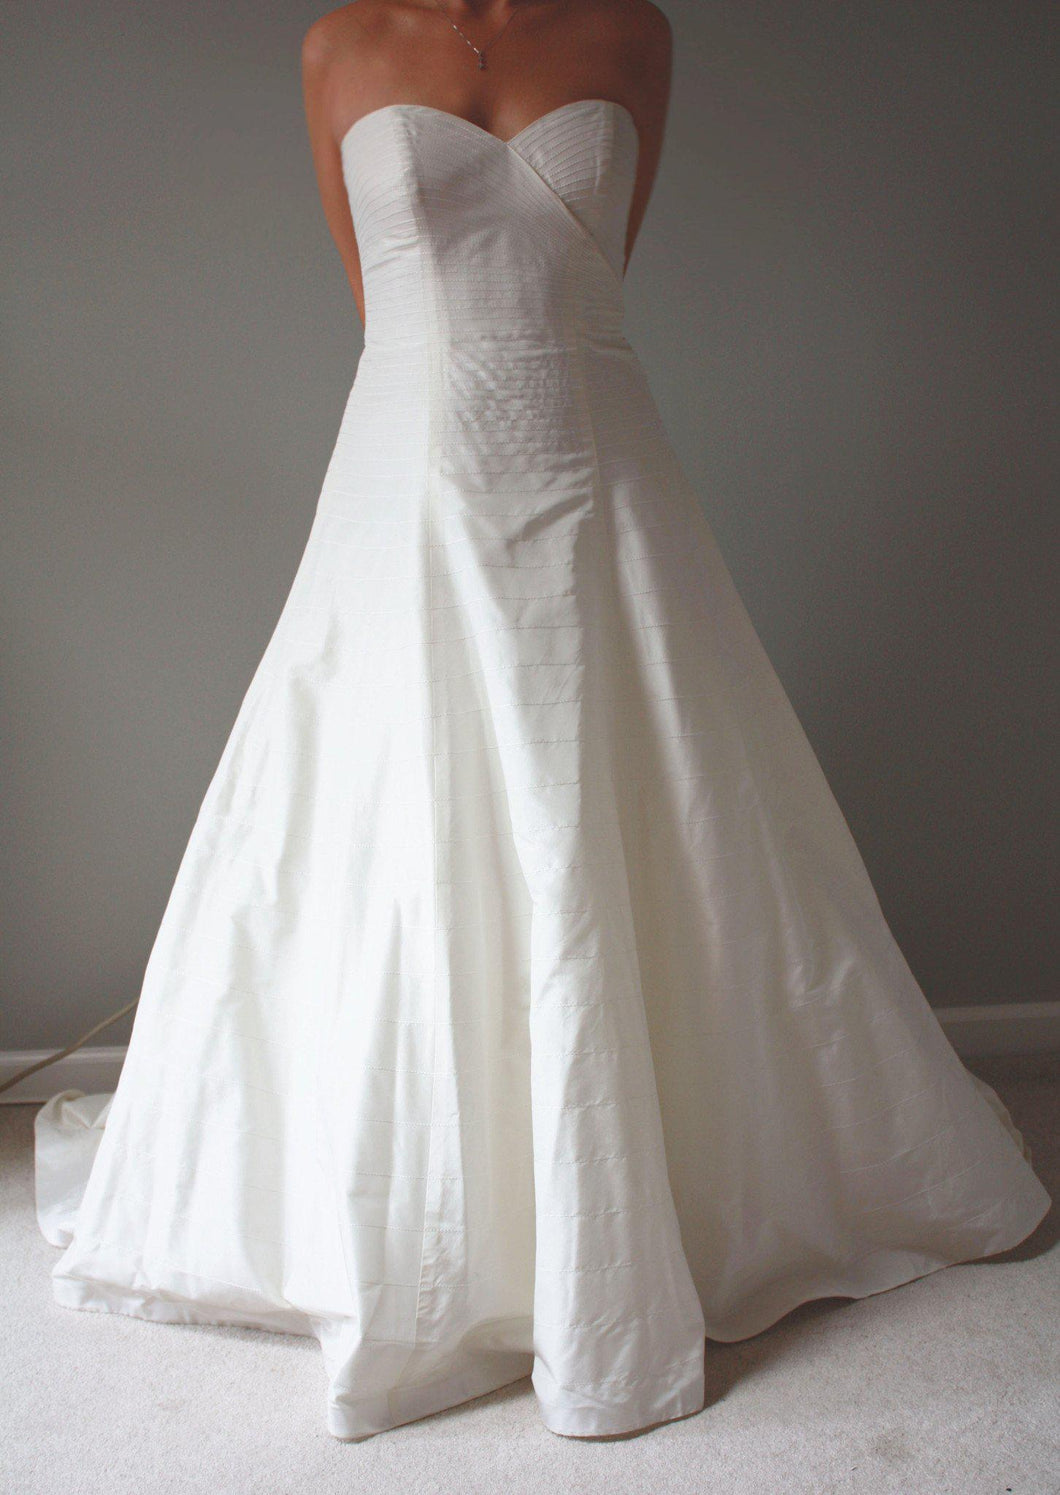 Priscilla of Boston Lynette Crossover Gown - Priscilla of Boston - Nearly Newlywed Bridal Boutique - 1